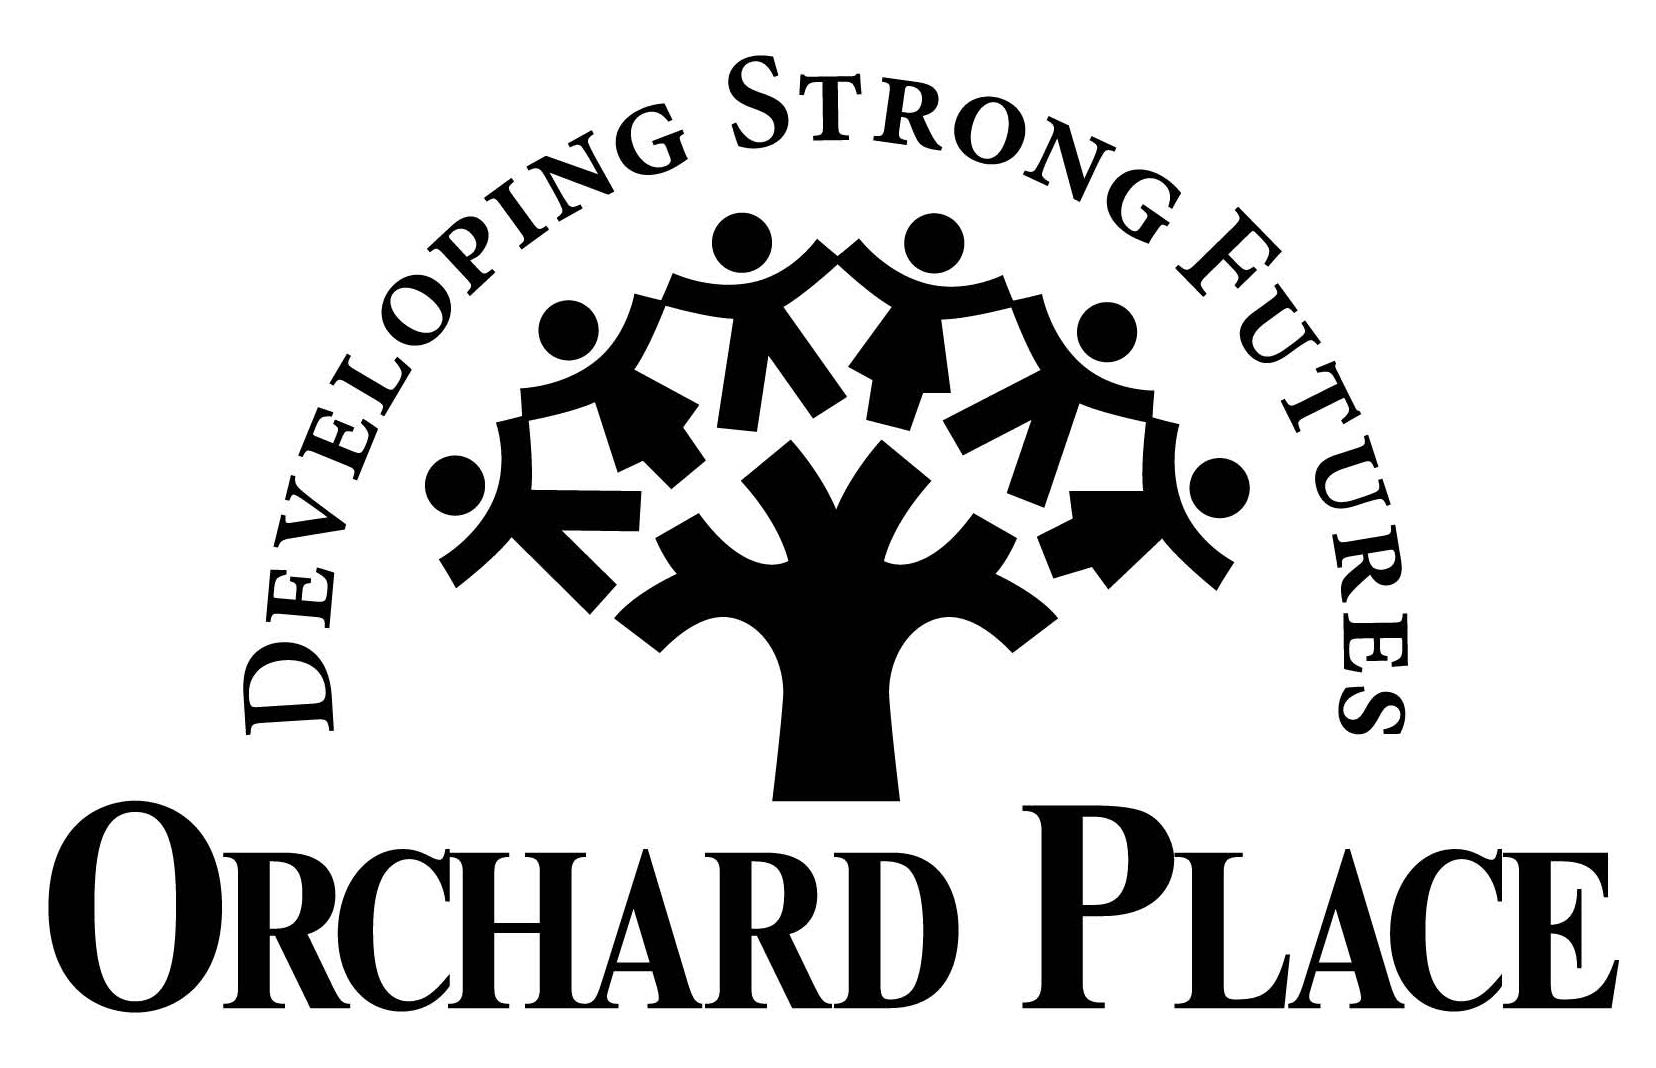 Orchard Place image 3